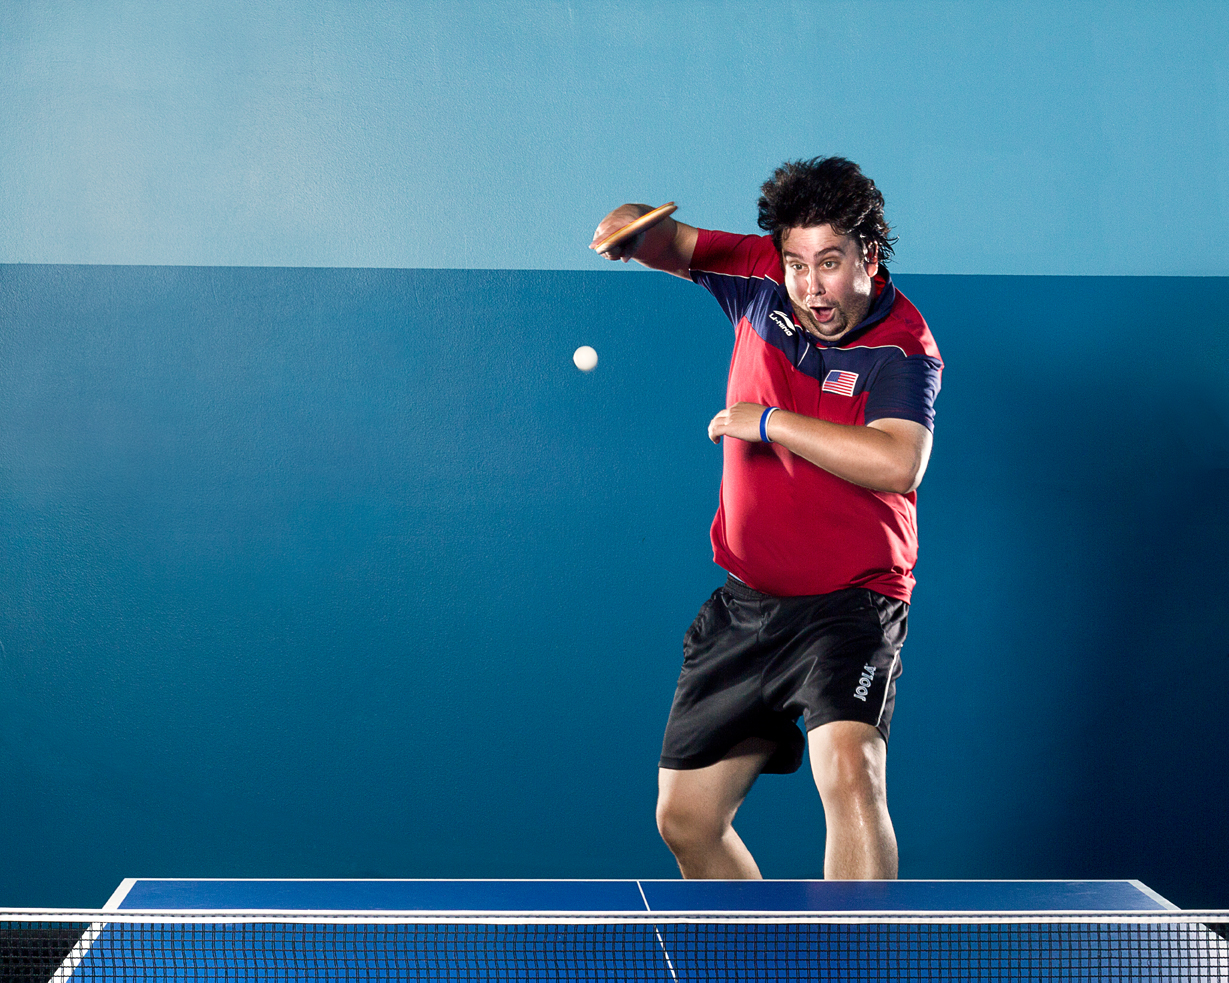 Funny Ping Pong Ad Photo